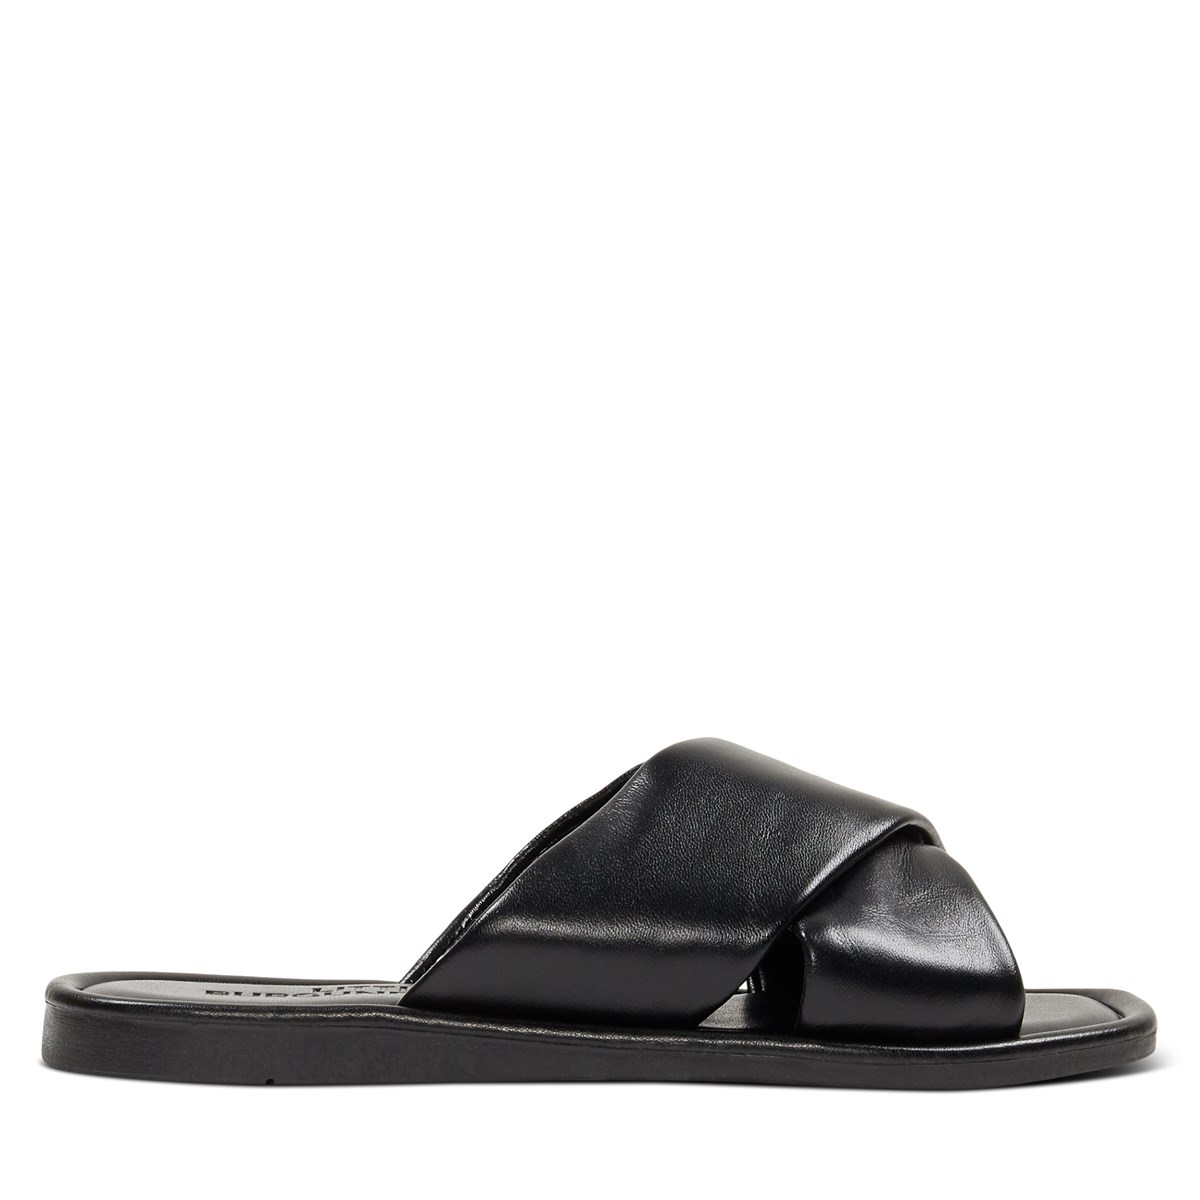 Women's Maya Slip-On Sandals in Black